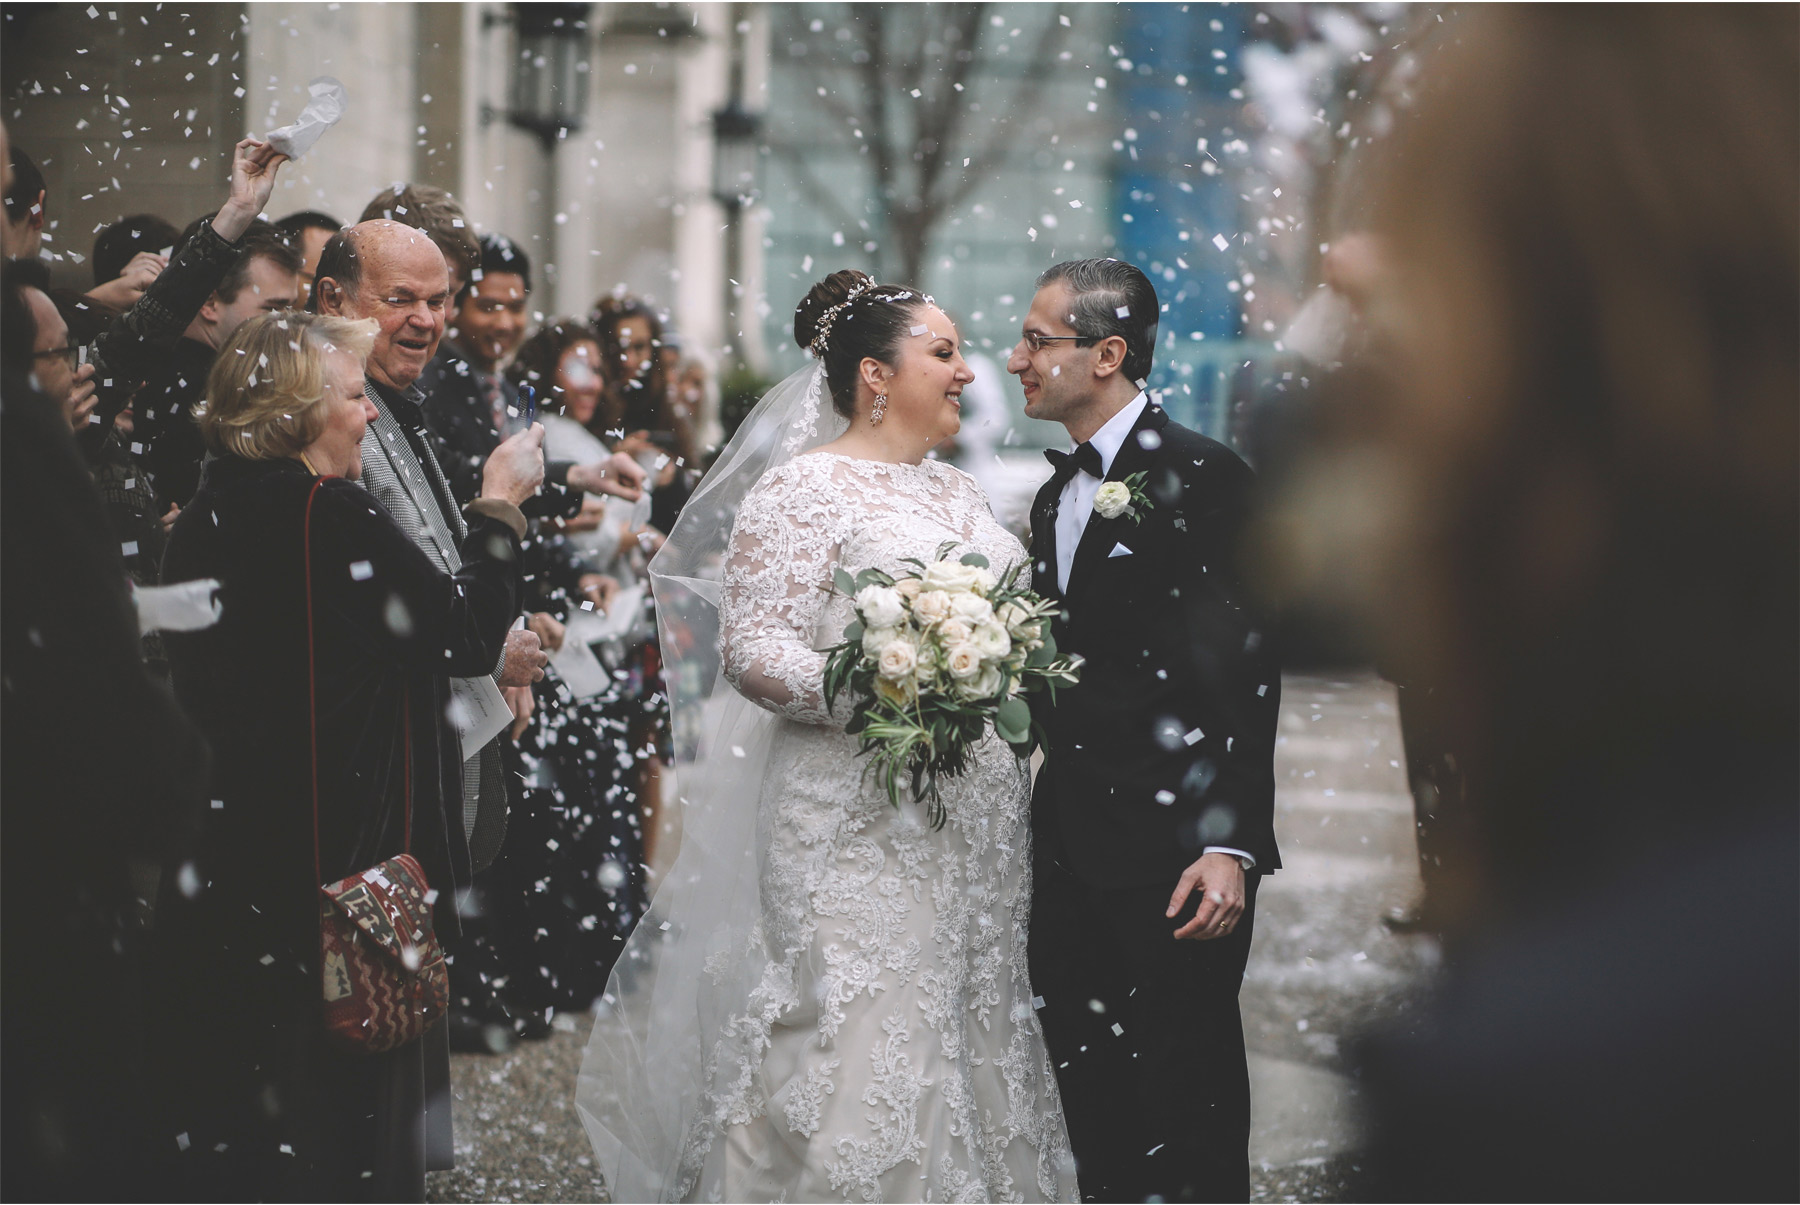 10-Minneapolis-Minnesota-Wedding-Photography-by-Vick-Photography-Ceremony-Central-Lutheran-church-Confetti-Anja-and-Waseem.jpg